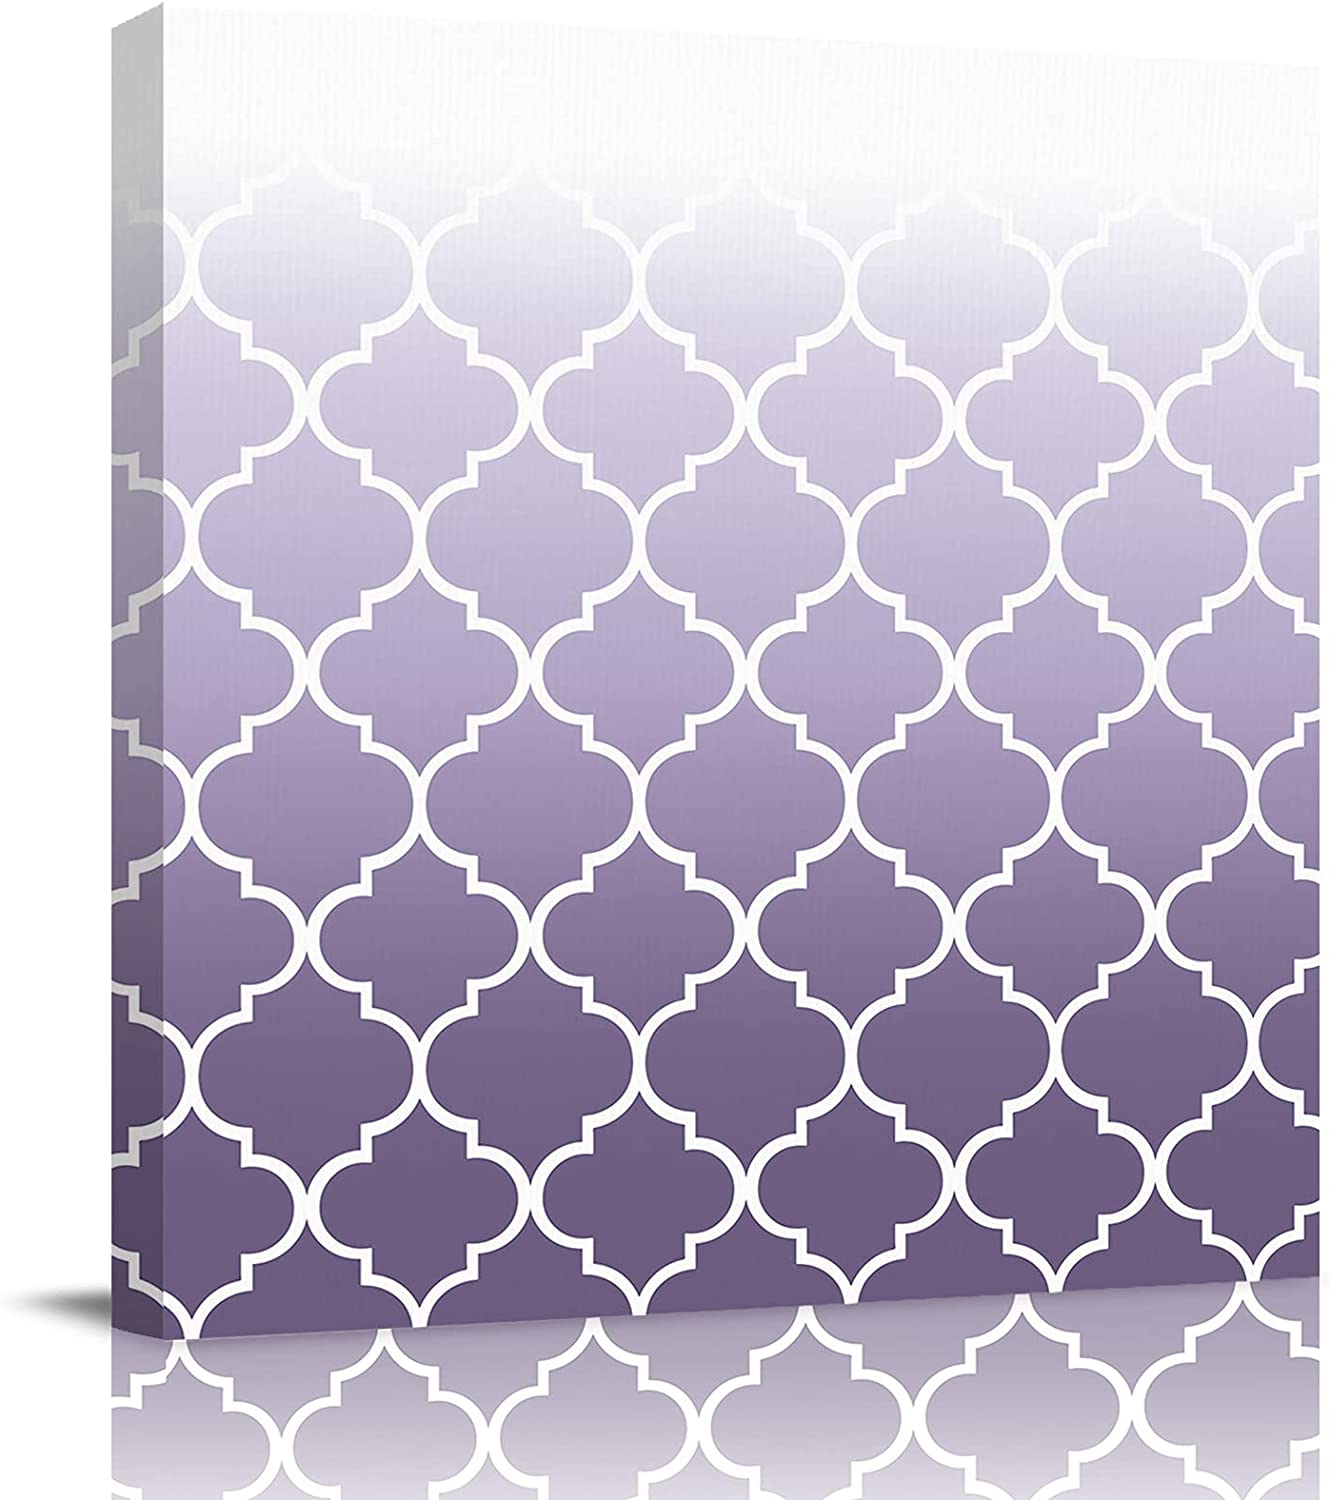 Canvas Wall Art Painting Decor Color Ombre Artwor Lavender Very Popularity popular White